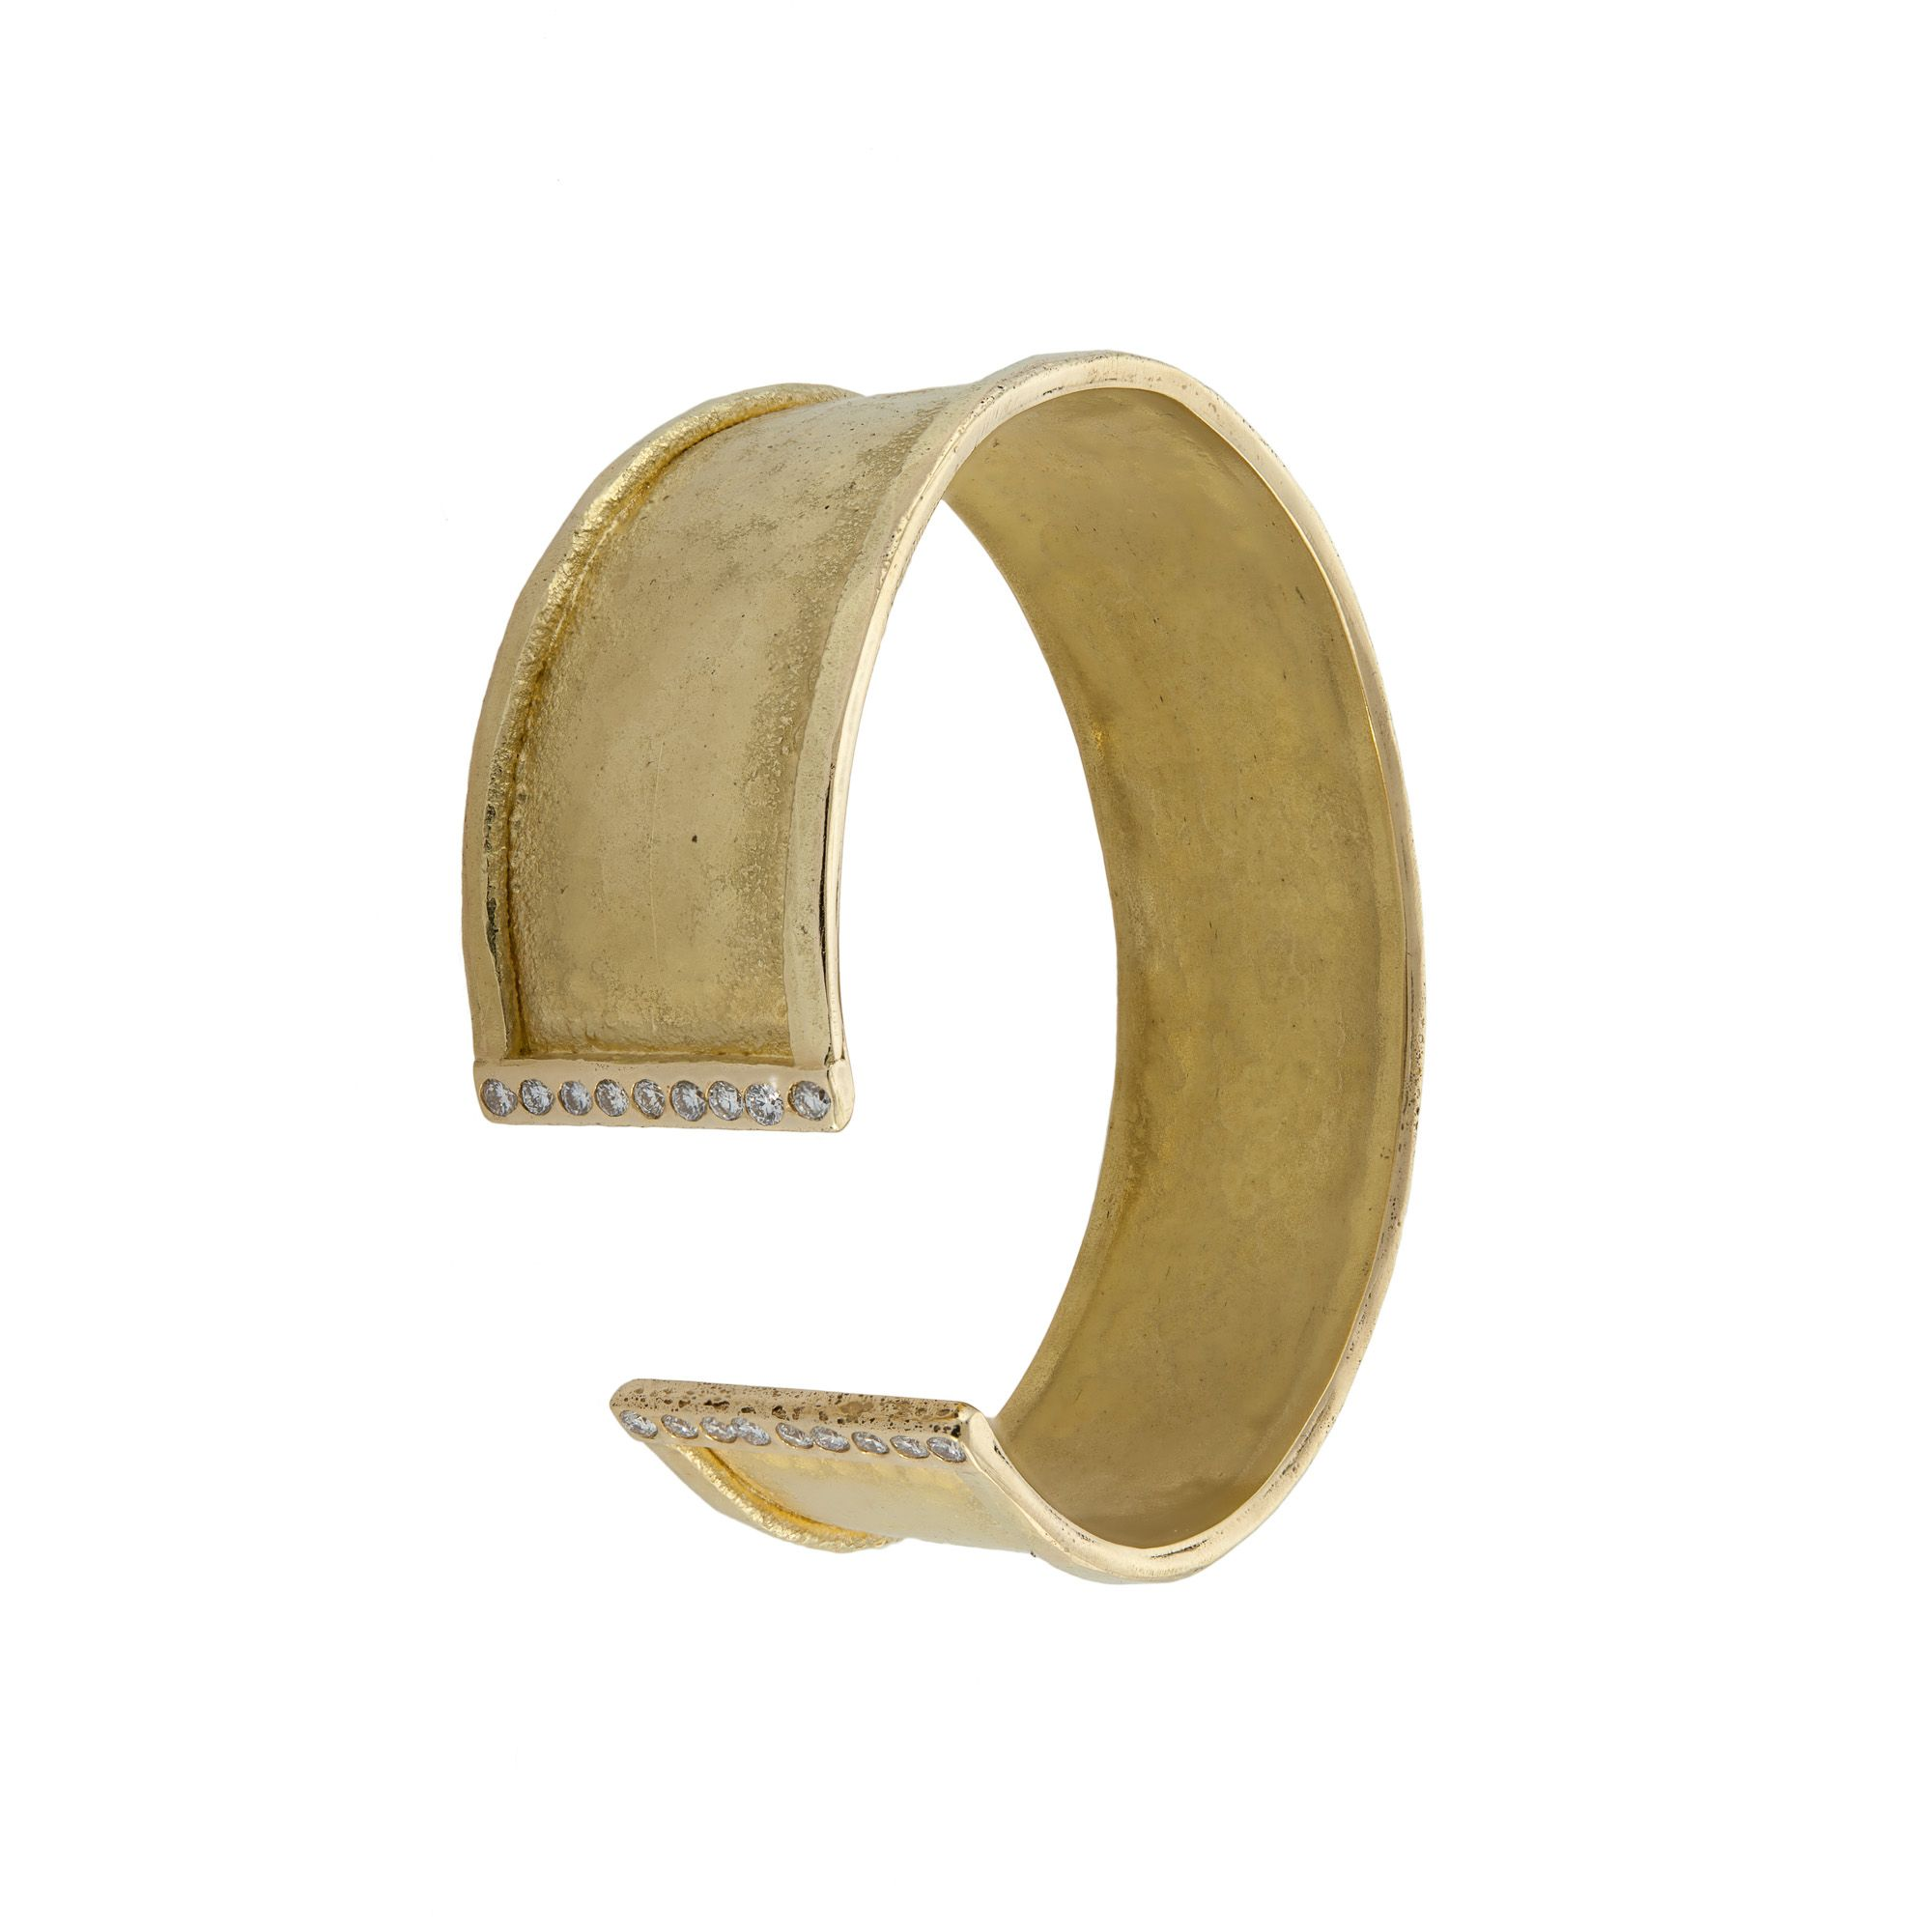 Gold bracelets with diamonds capolavori capolavori jewelry